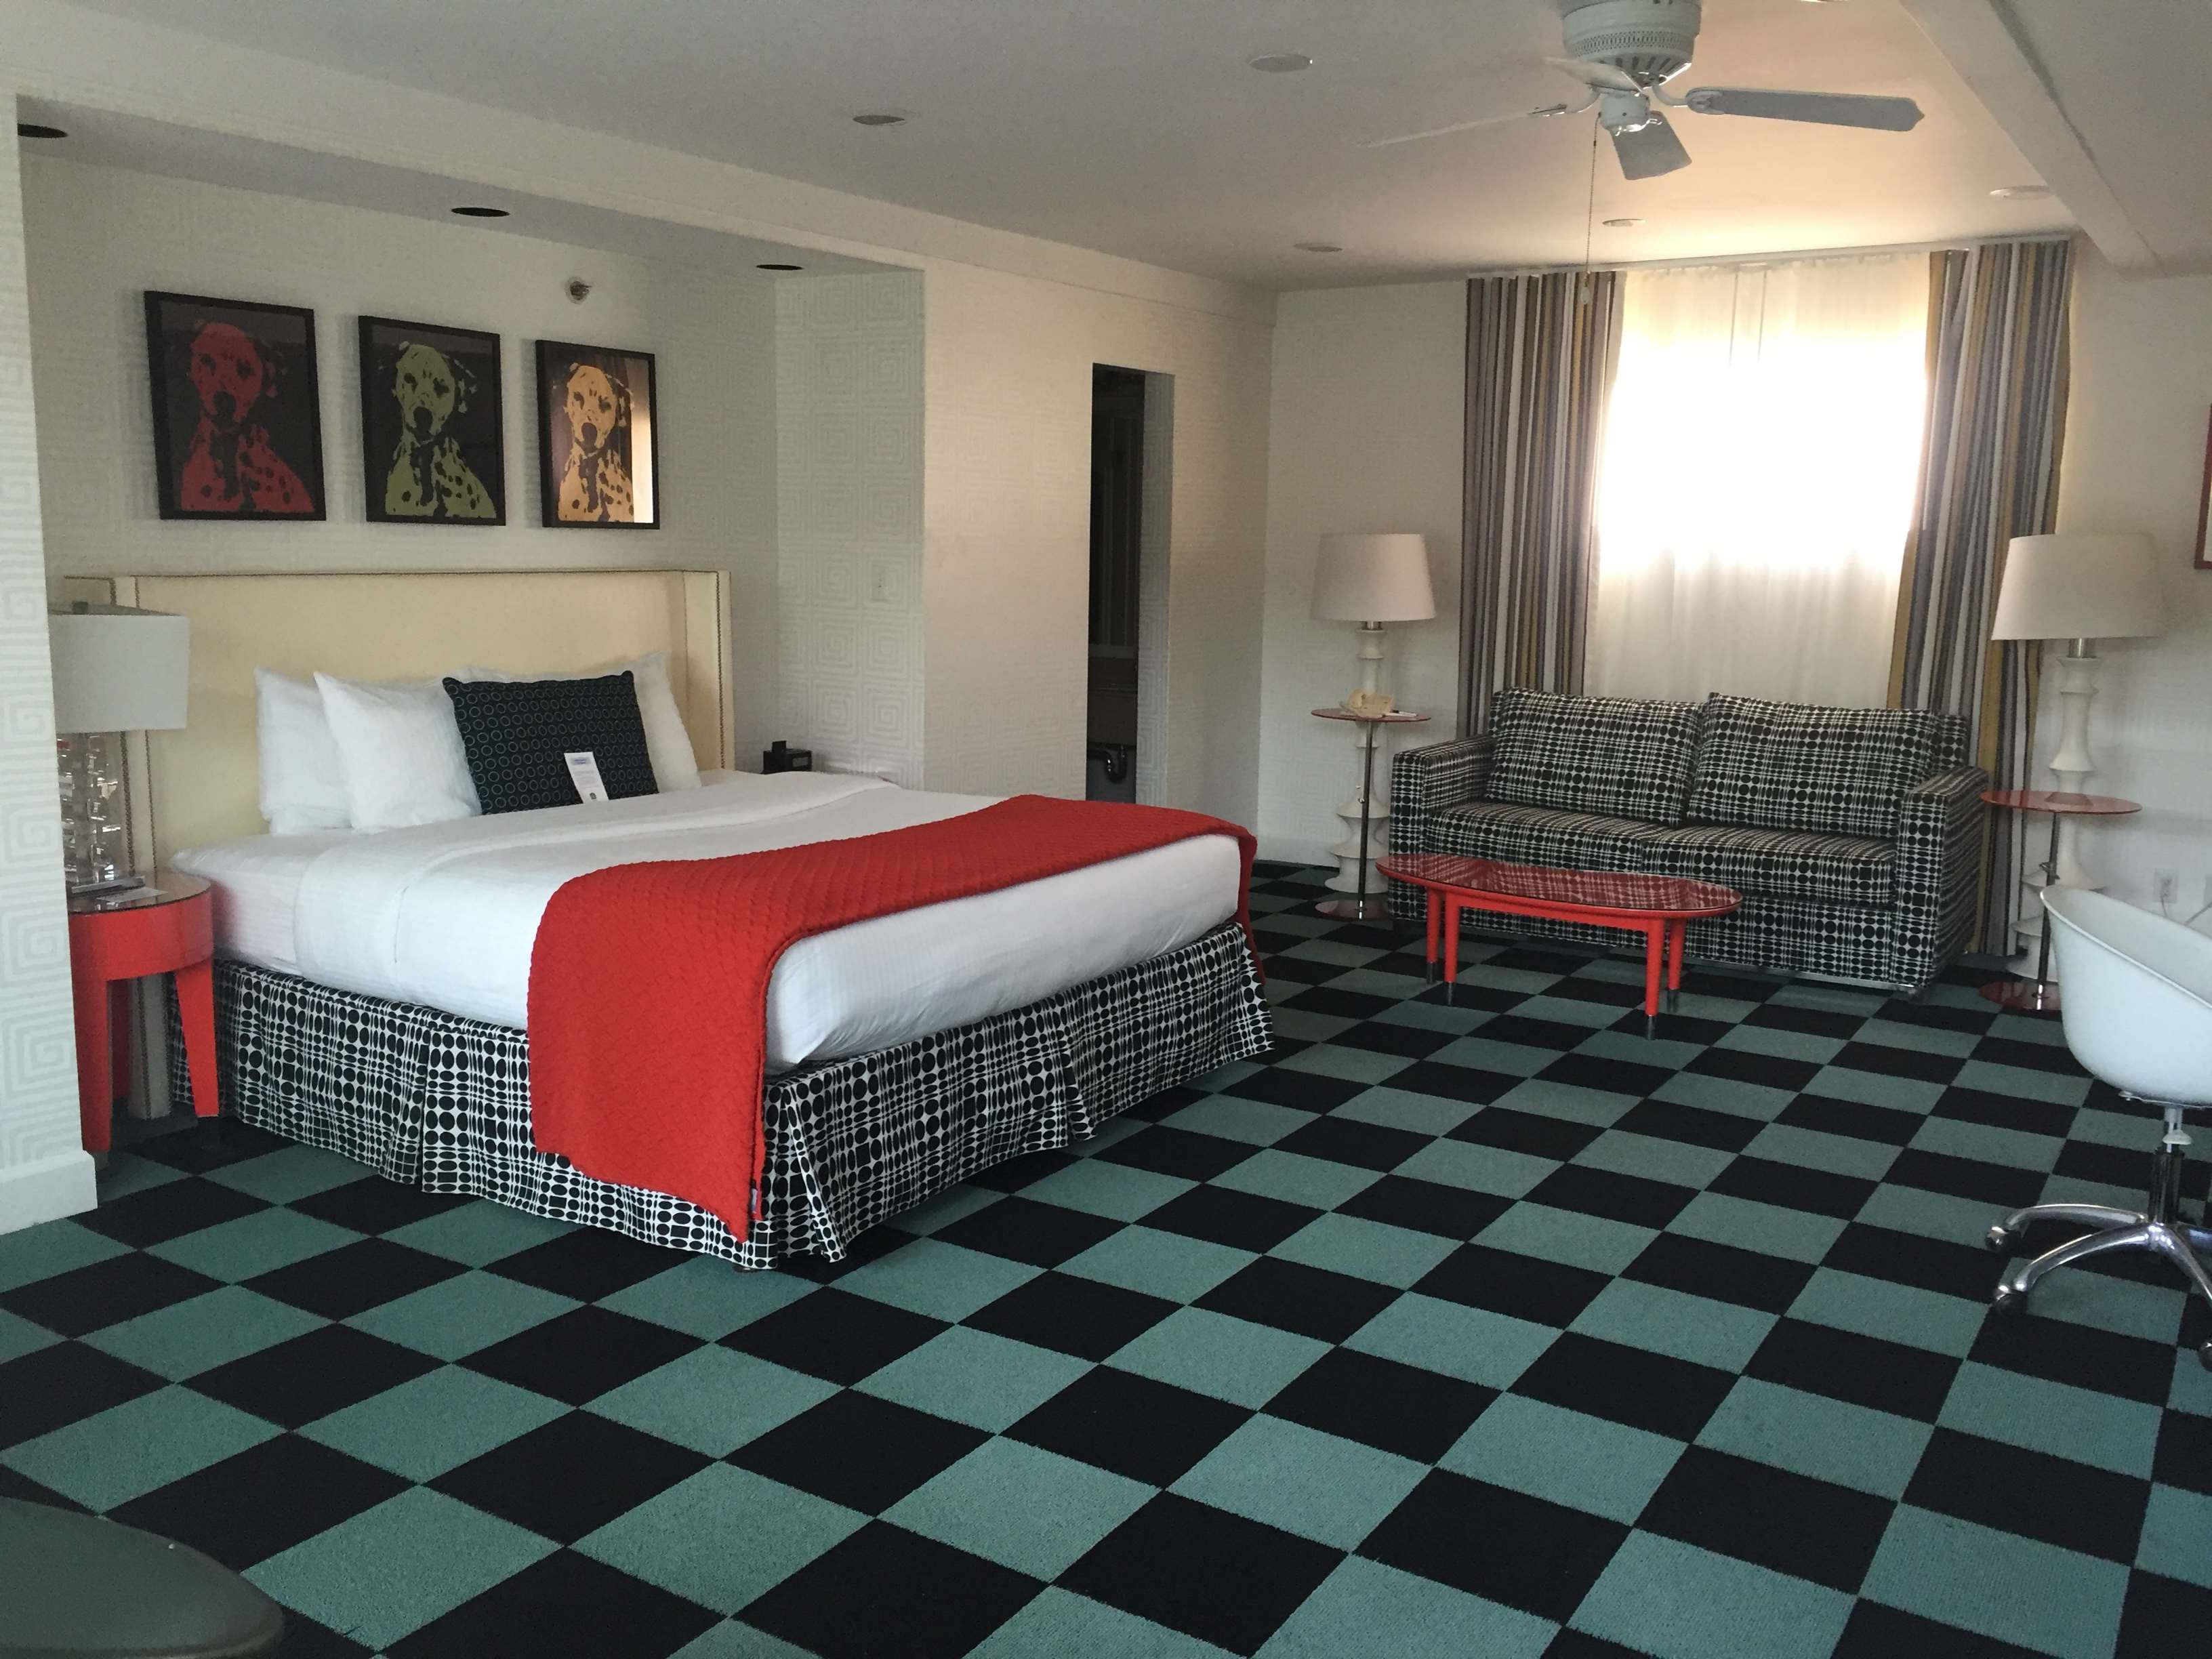 Best Western Plus Americania Coupons Near Me In San Francisco 8coupons